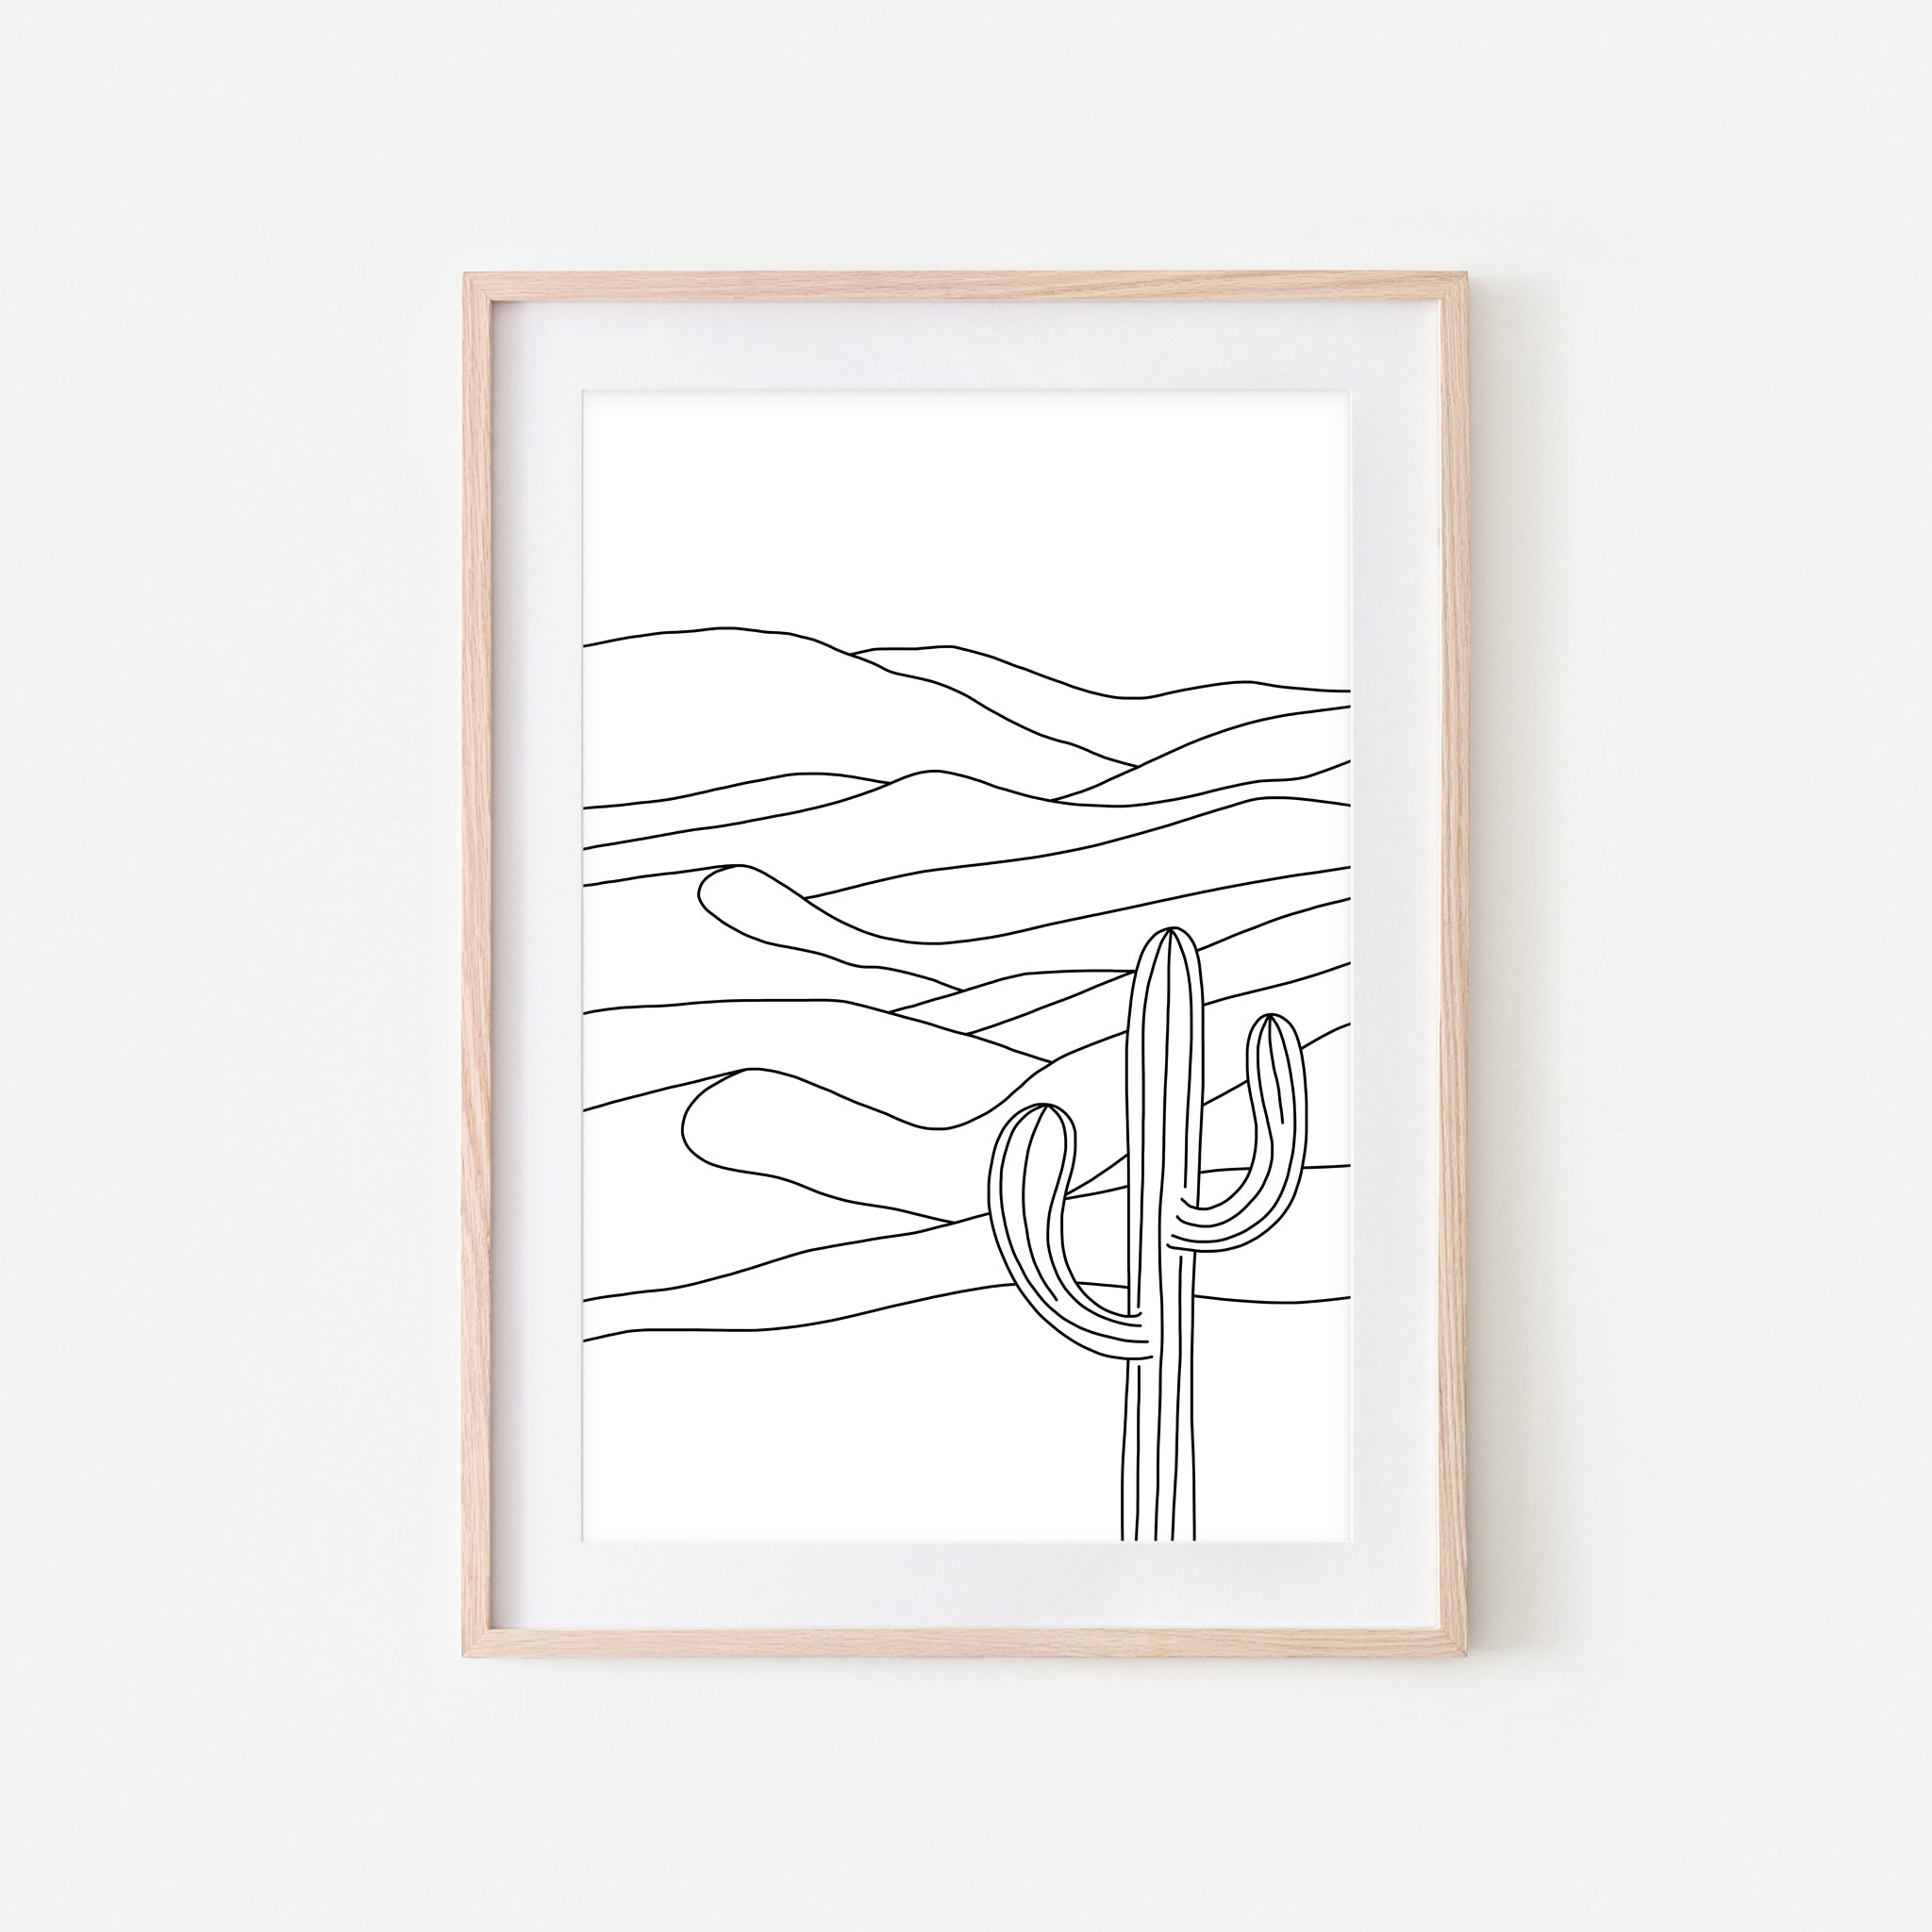 Desert No. 2 Wall Art - Cactus Sand Dunes Line Drawing - Minimalist Abstract Landscape - Black and White Print, Poster or Printable Download